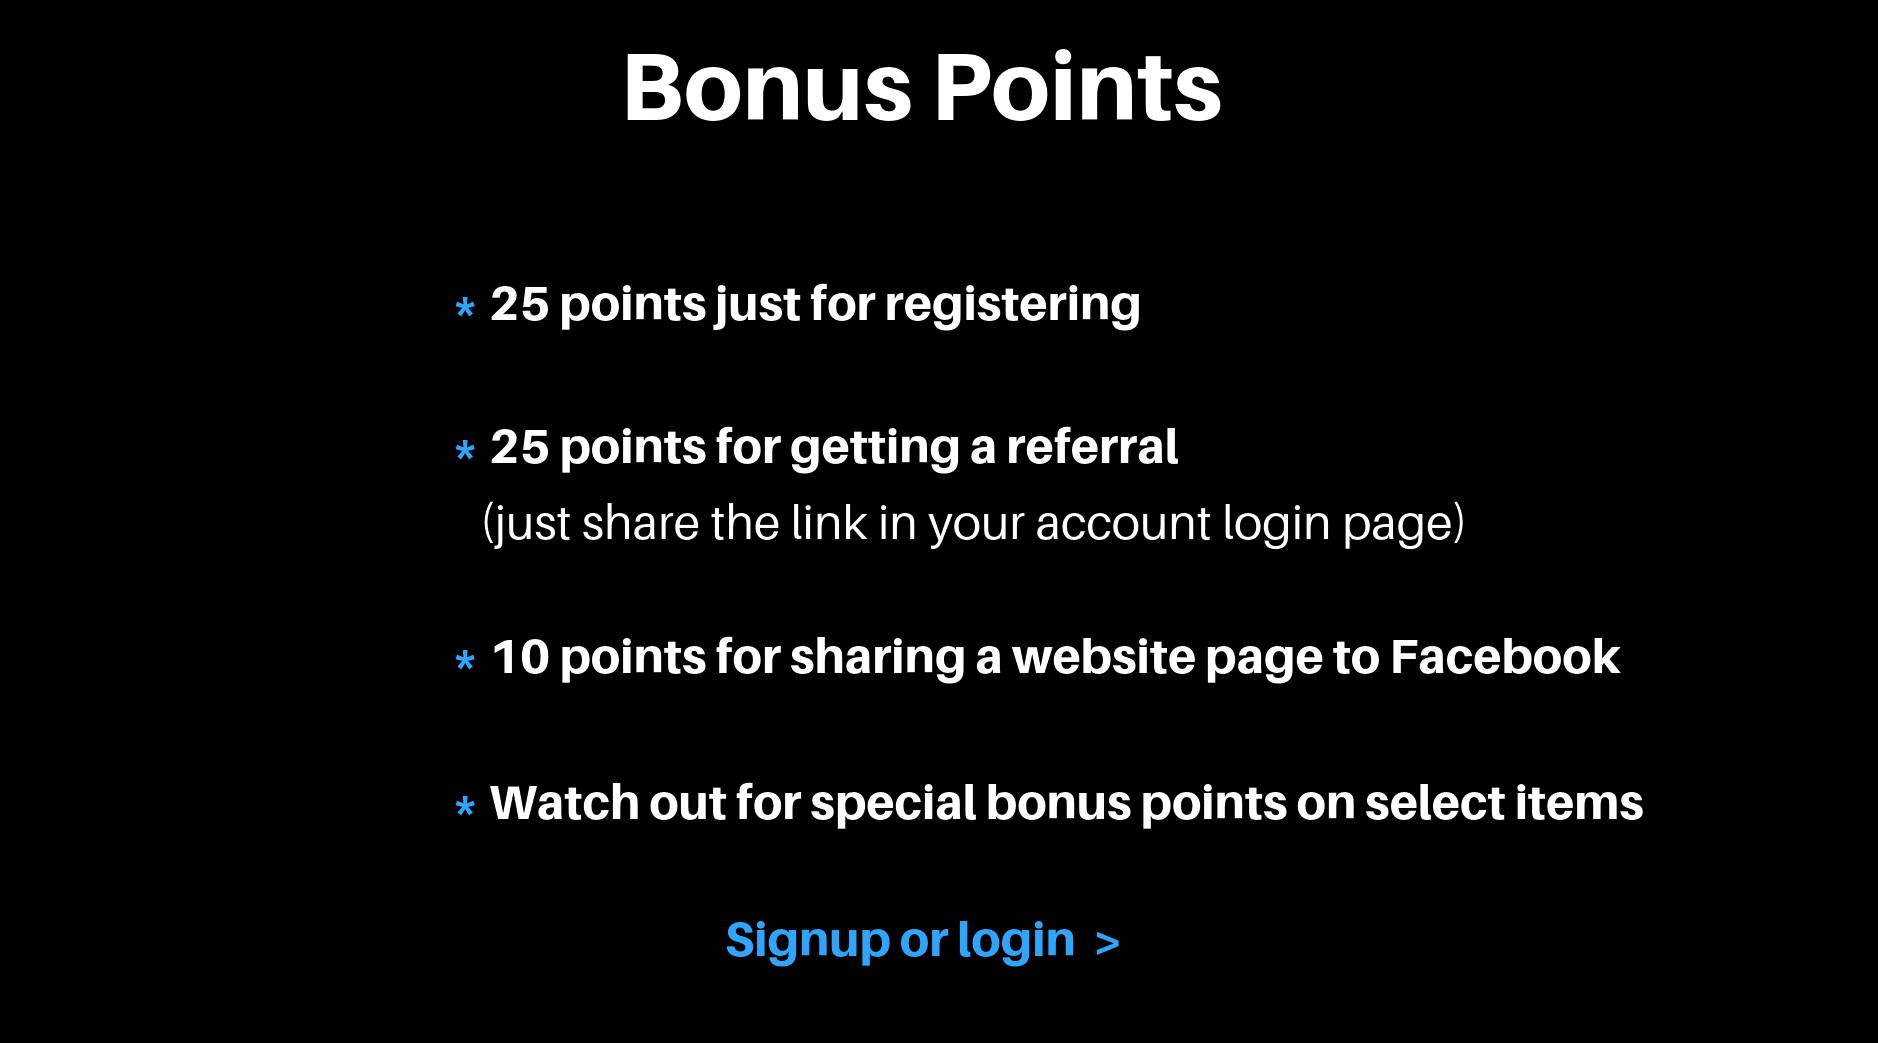 Bonus Points. 25 points just for registering. 25 points for getting a referral (just share the link in your account login page). 10 points for sharing a website page to Facebook. Watch out for special bonus points on select items. Signup or login.